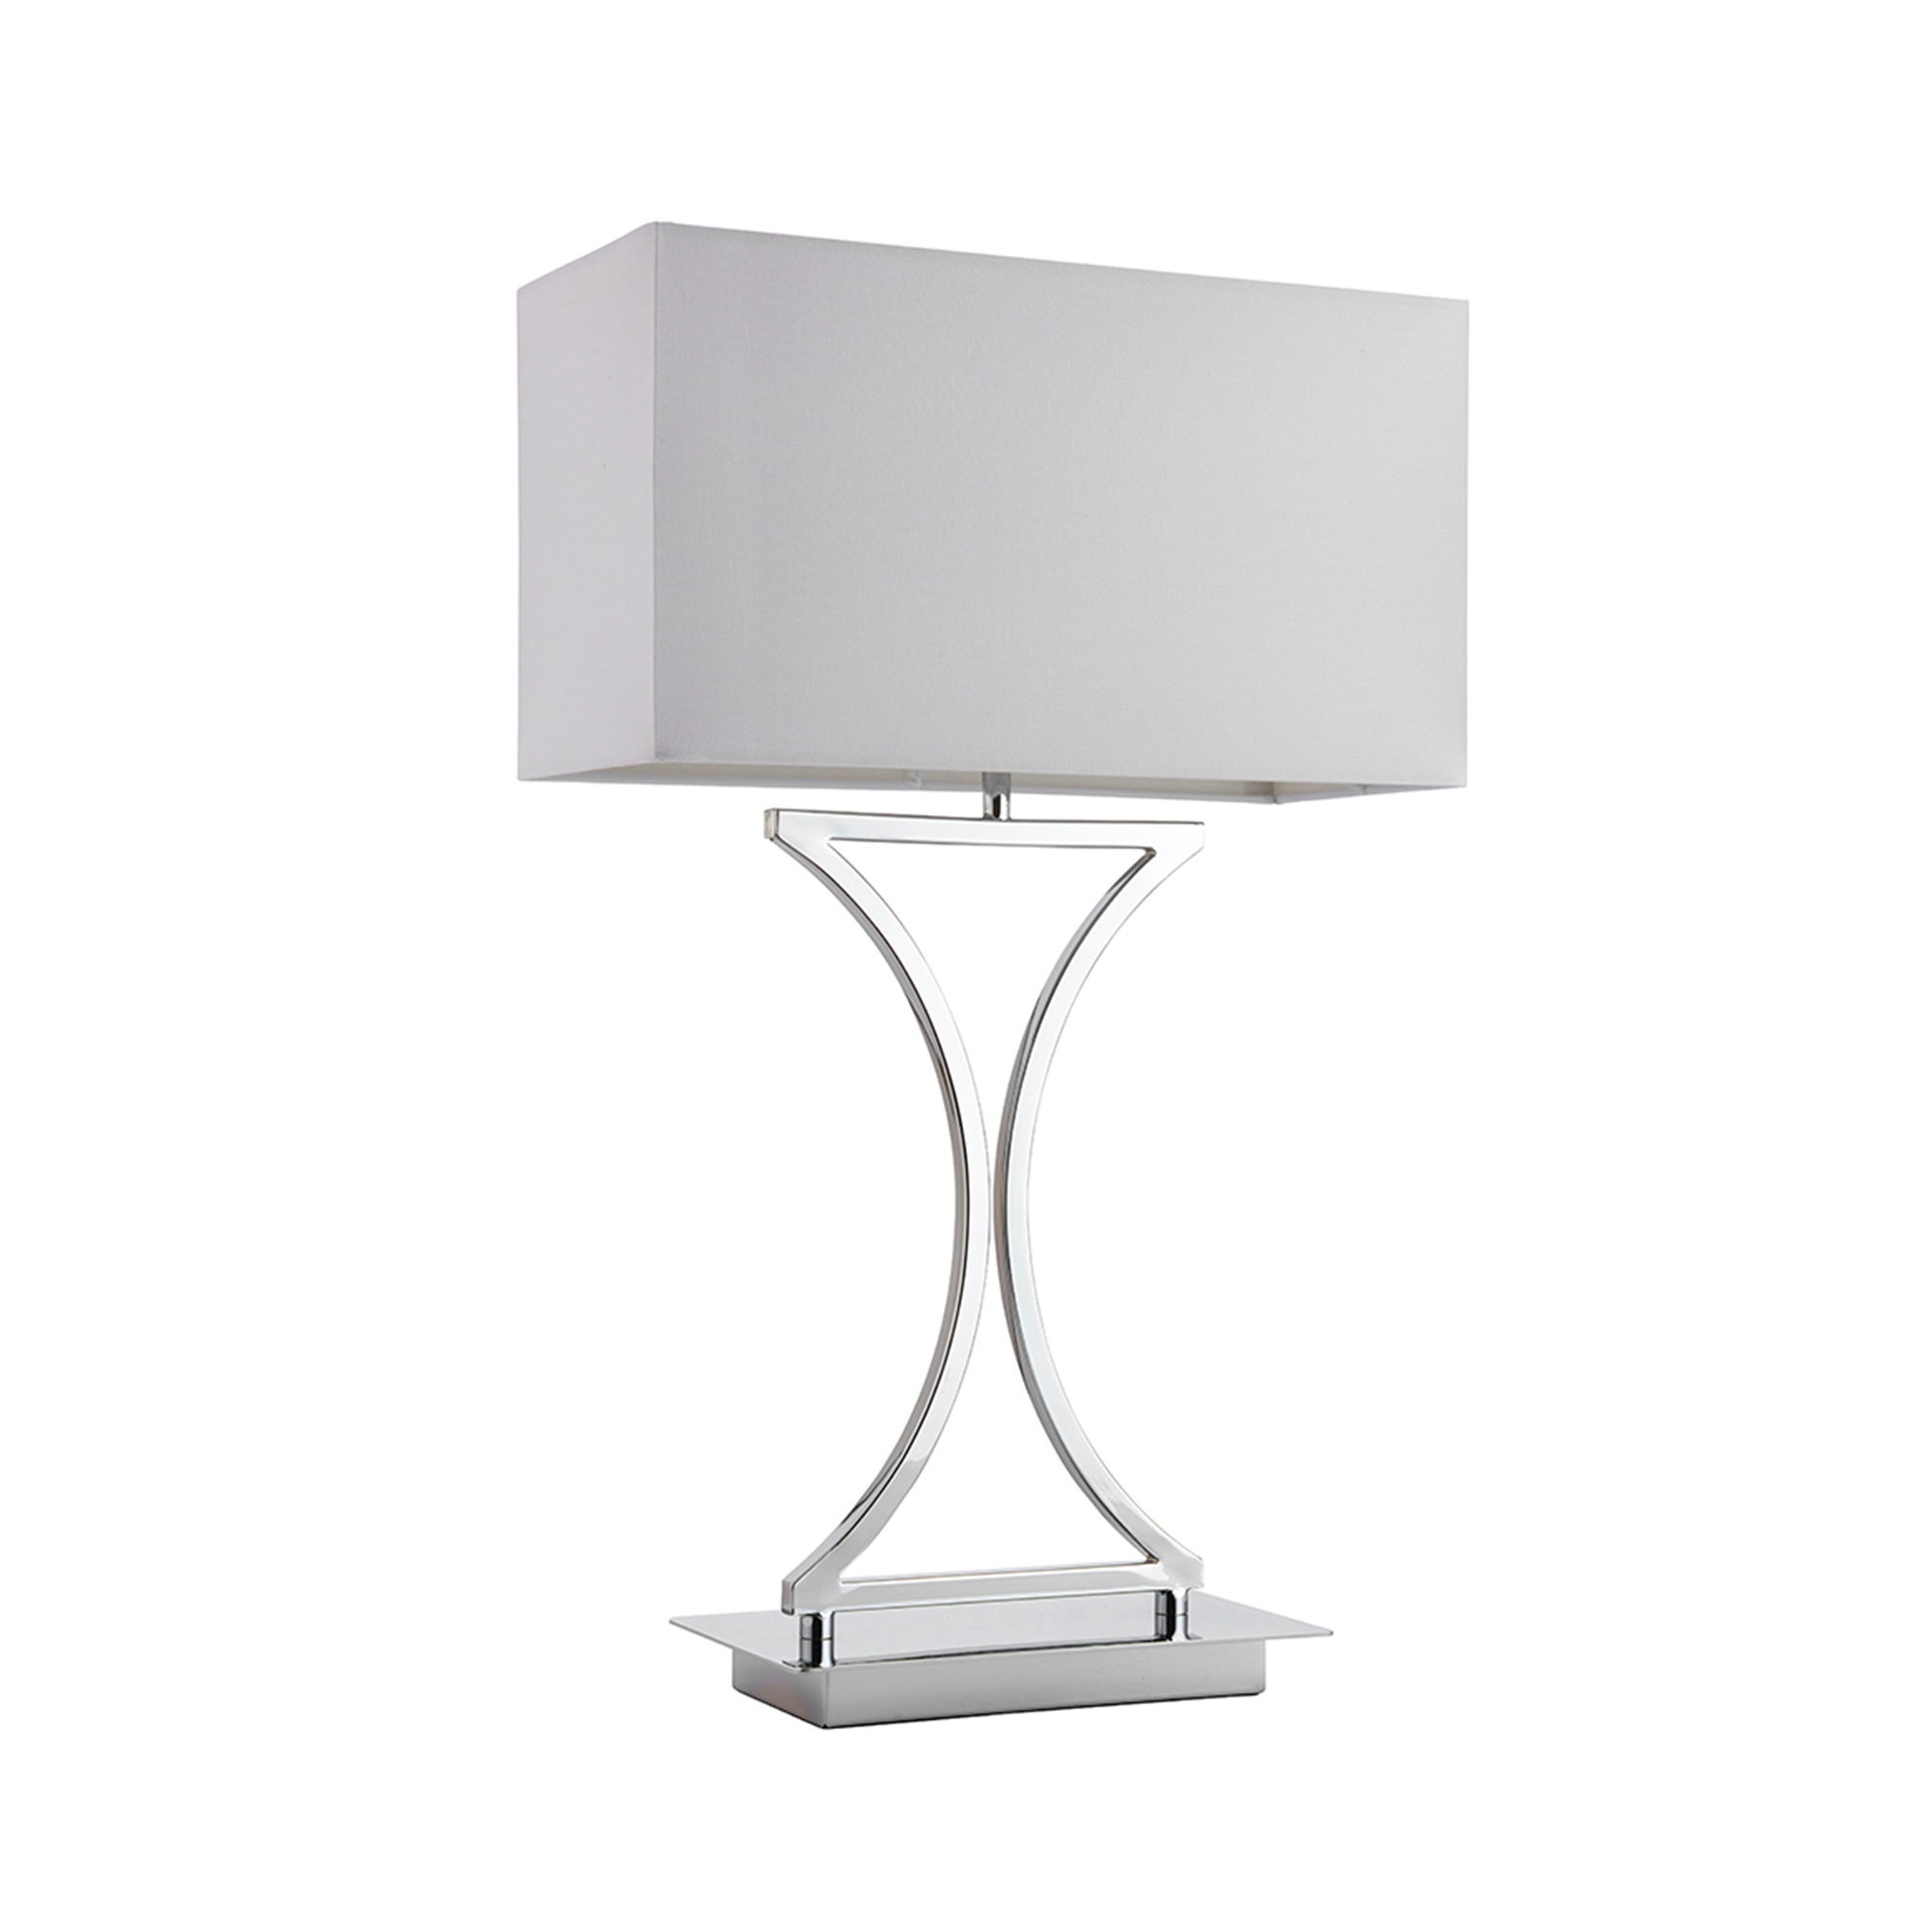 shade products x banding lamps wide series table two chris shimmerimg telescoping height steven madison lamp chrome art white overall and